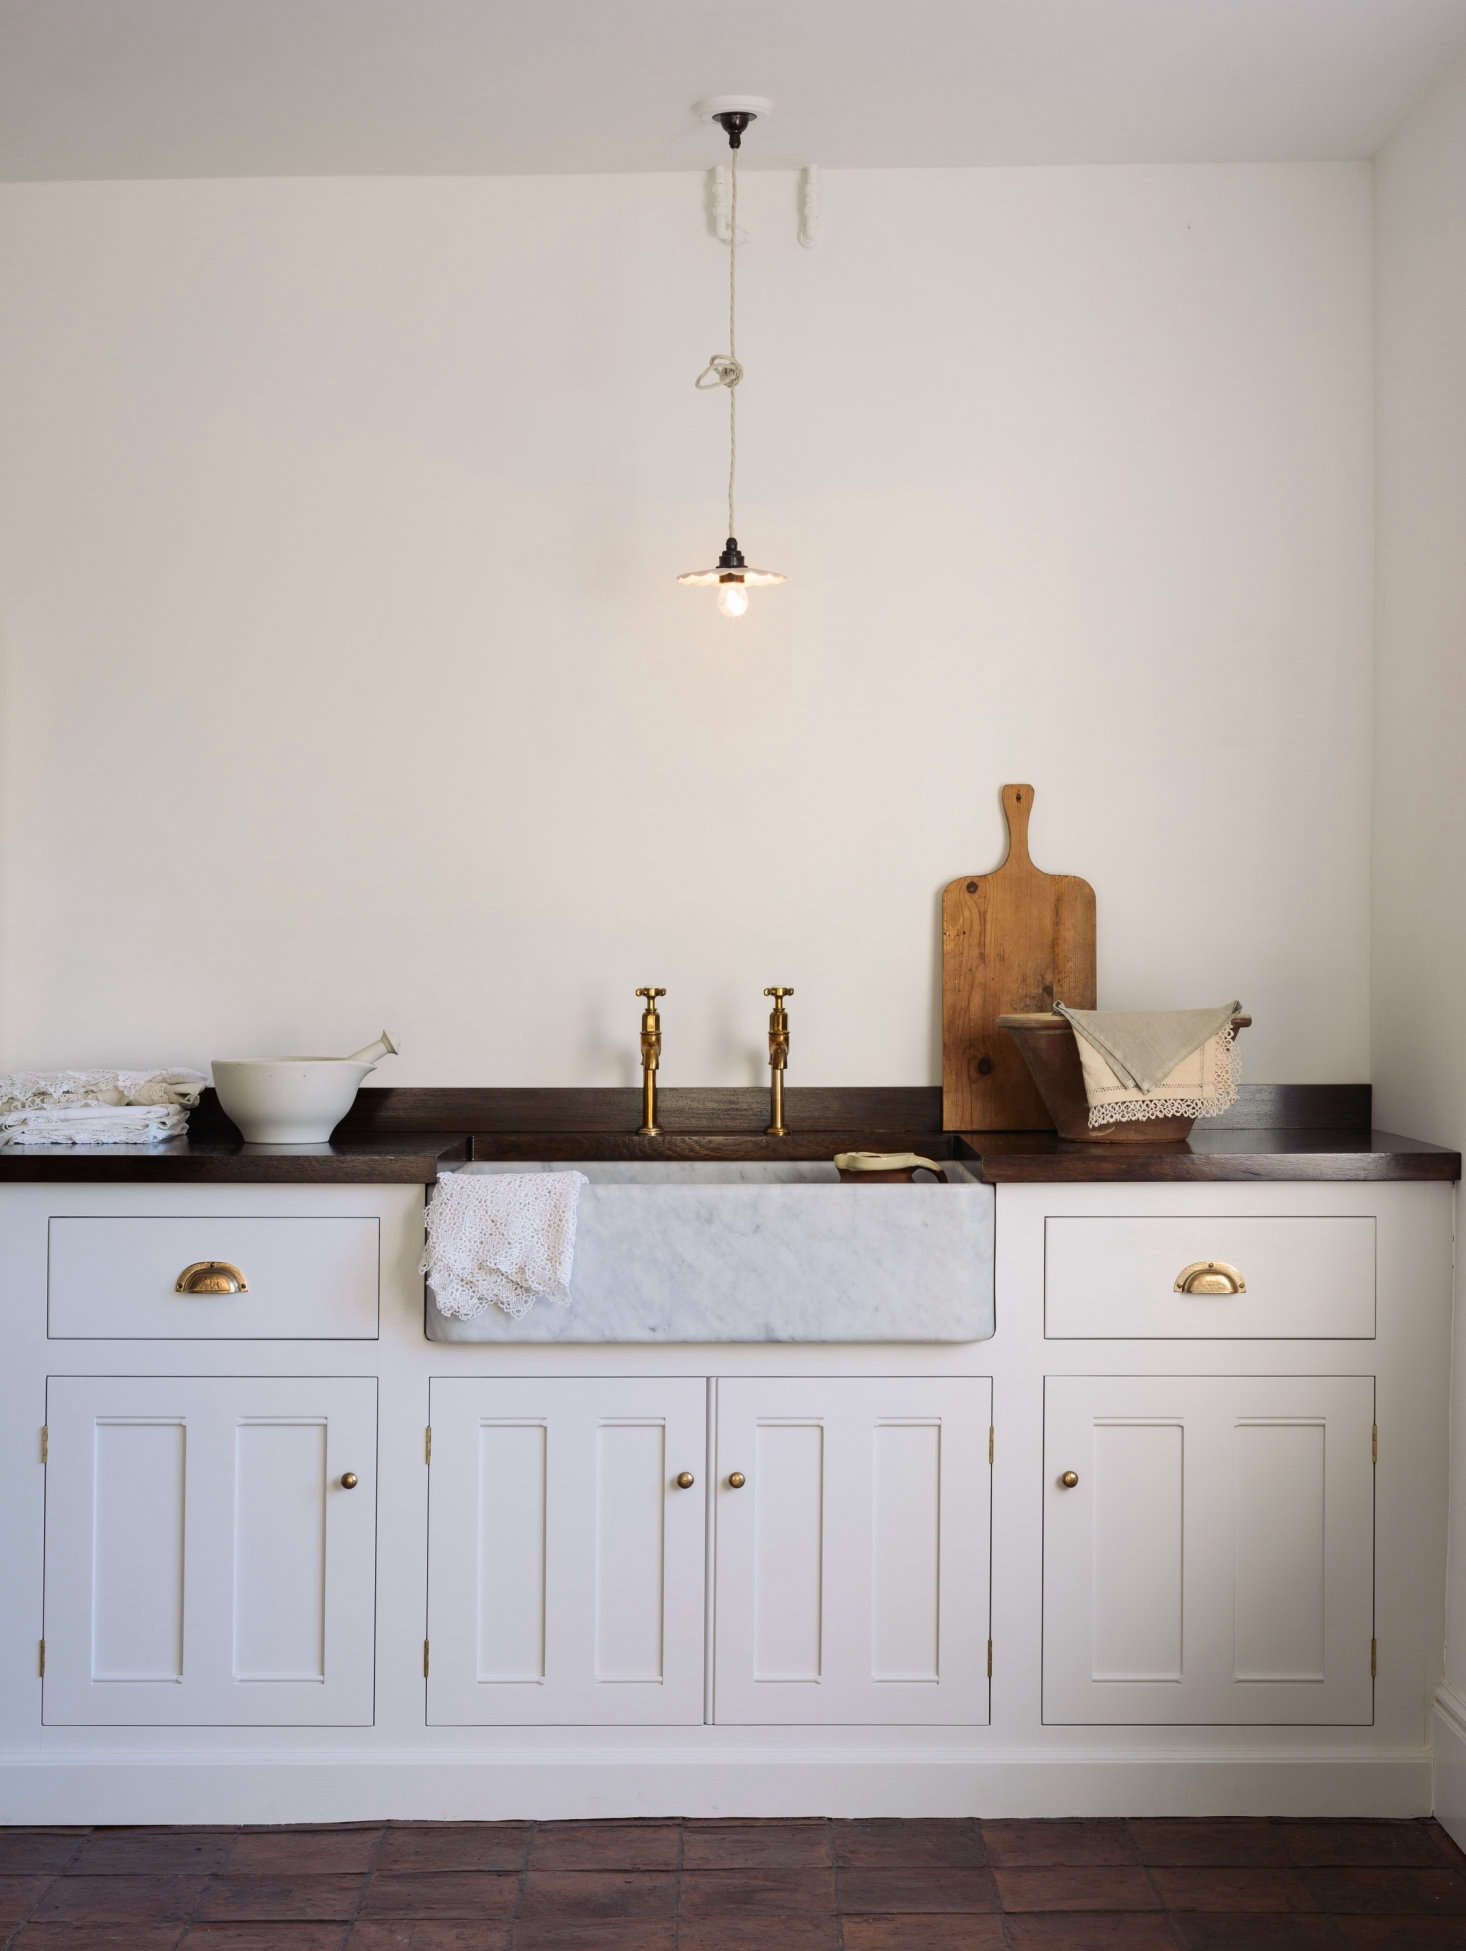 DeVol has been working to produce the line of sinks for some time after admiring the &#8